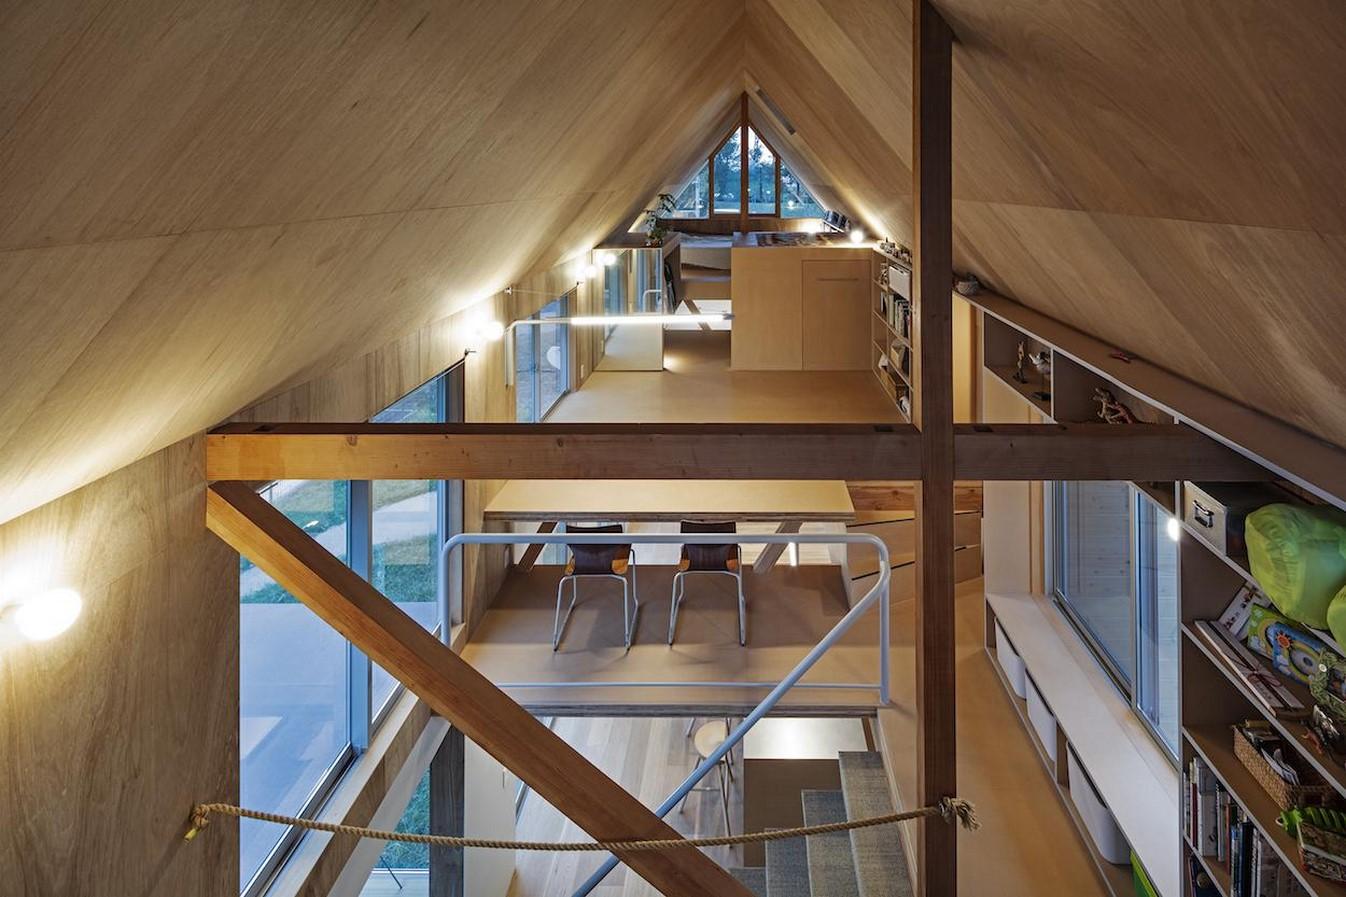 House in field' containing variety of living spaces beneath its gable roof designed by Ship Architecture - Sheet5